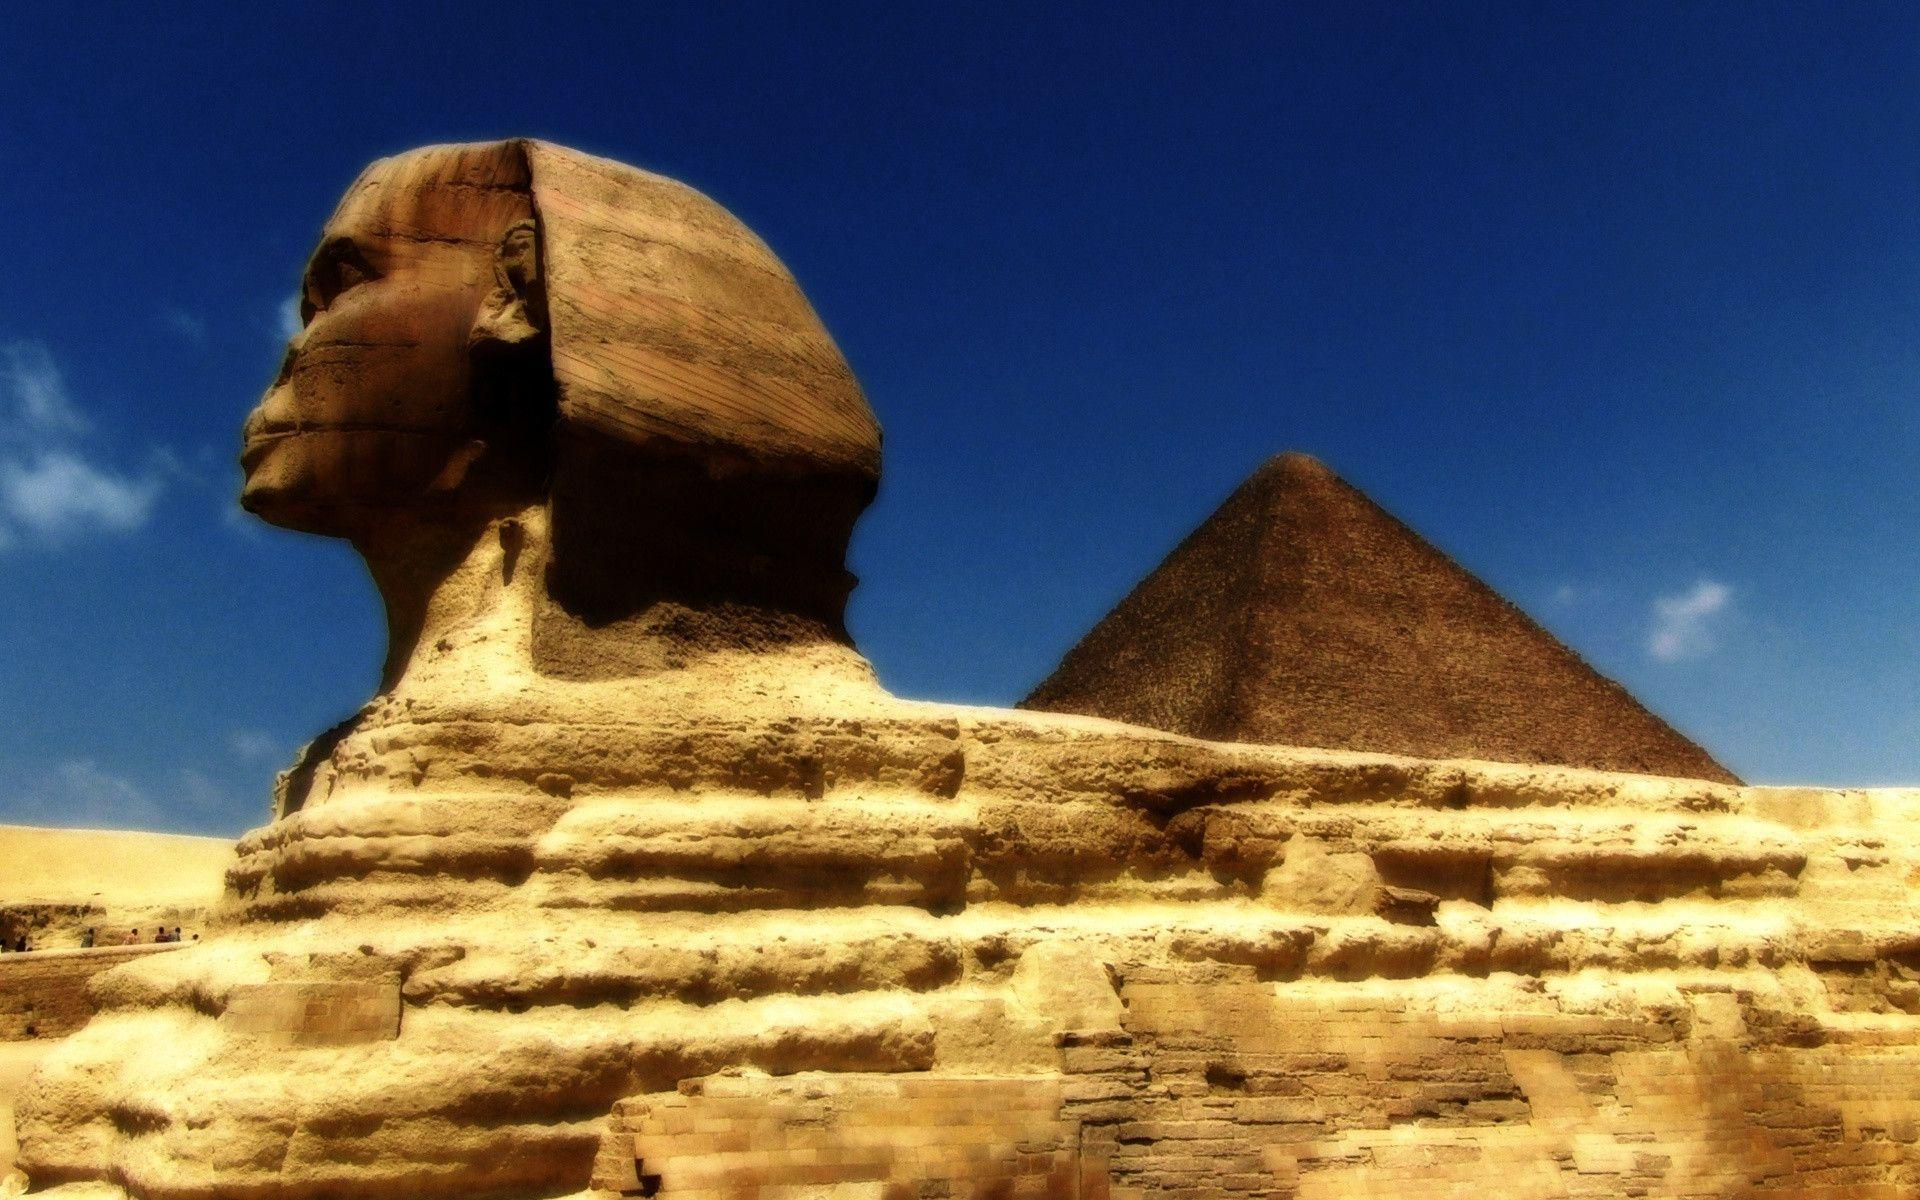 Great Sphinx in Giza Egypt Free Stock Photo and Wallpapers